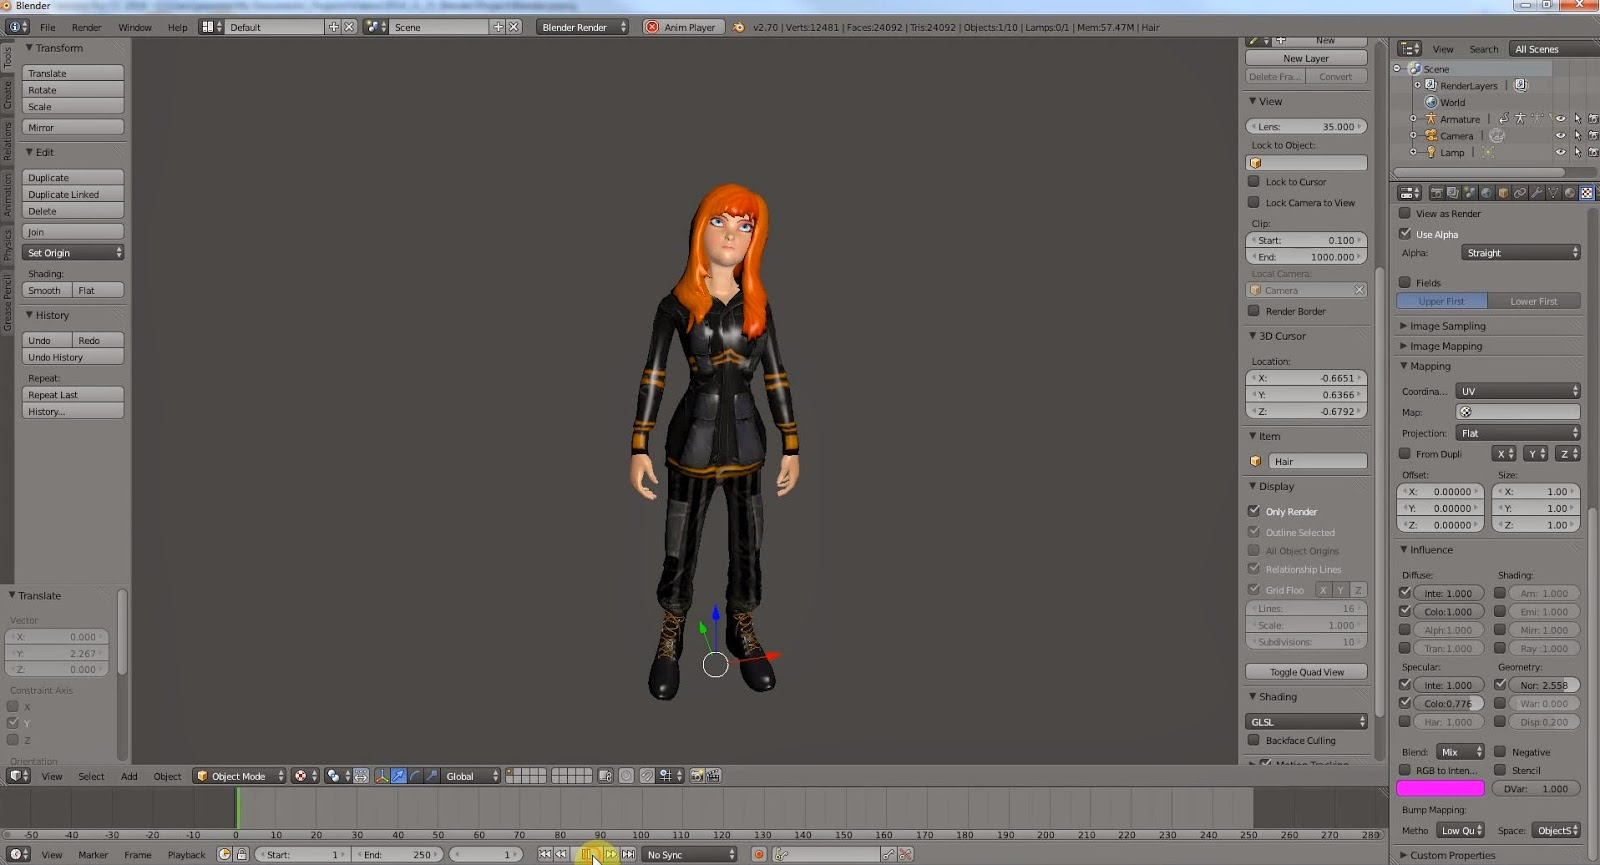 Blender Character Modeling Workflow : Mixamo to blender workflow cg tutorial